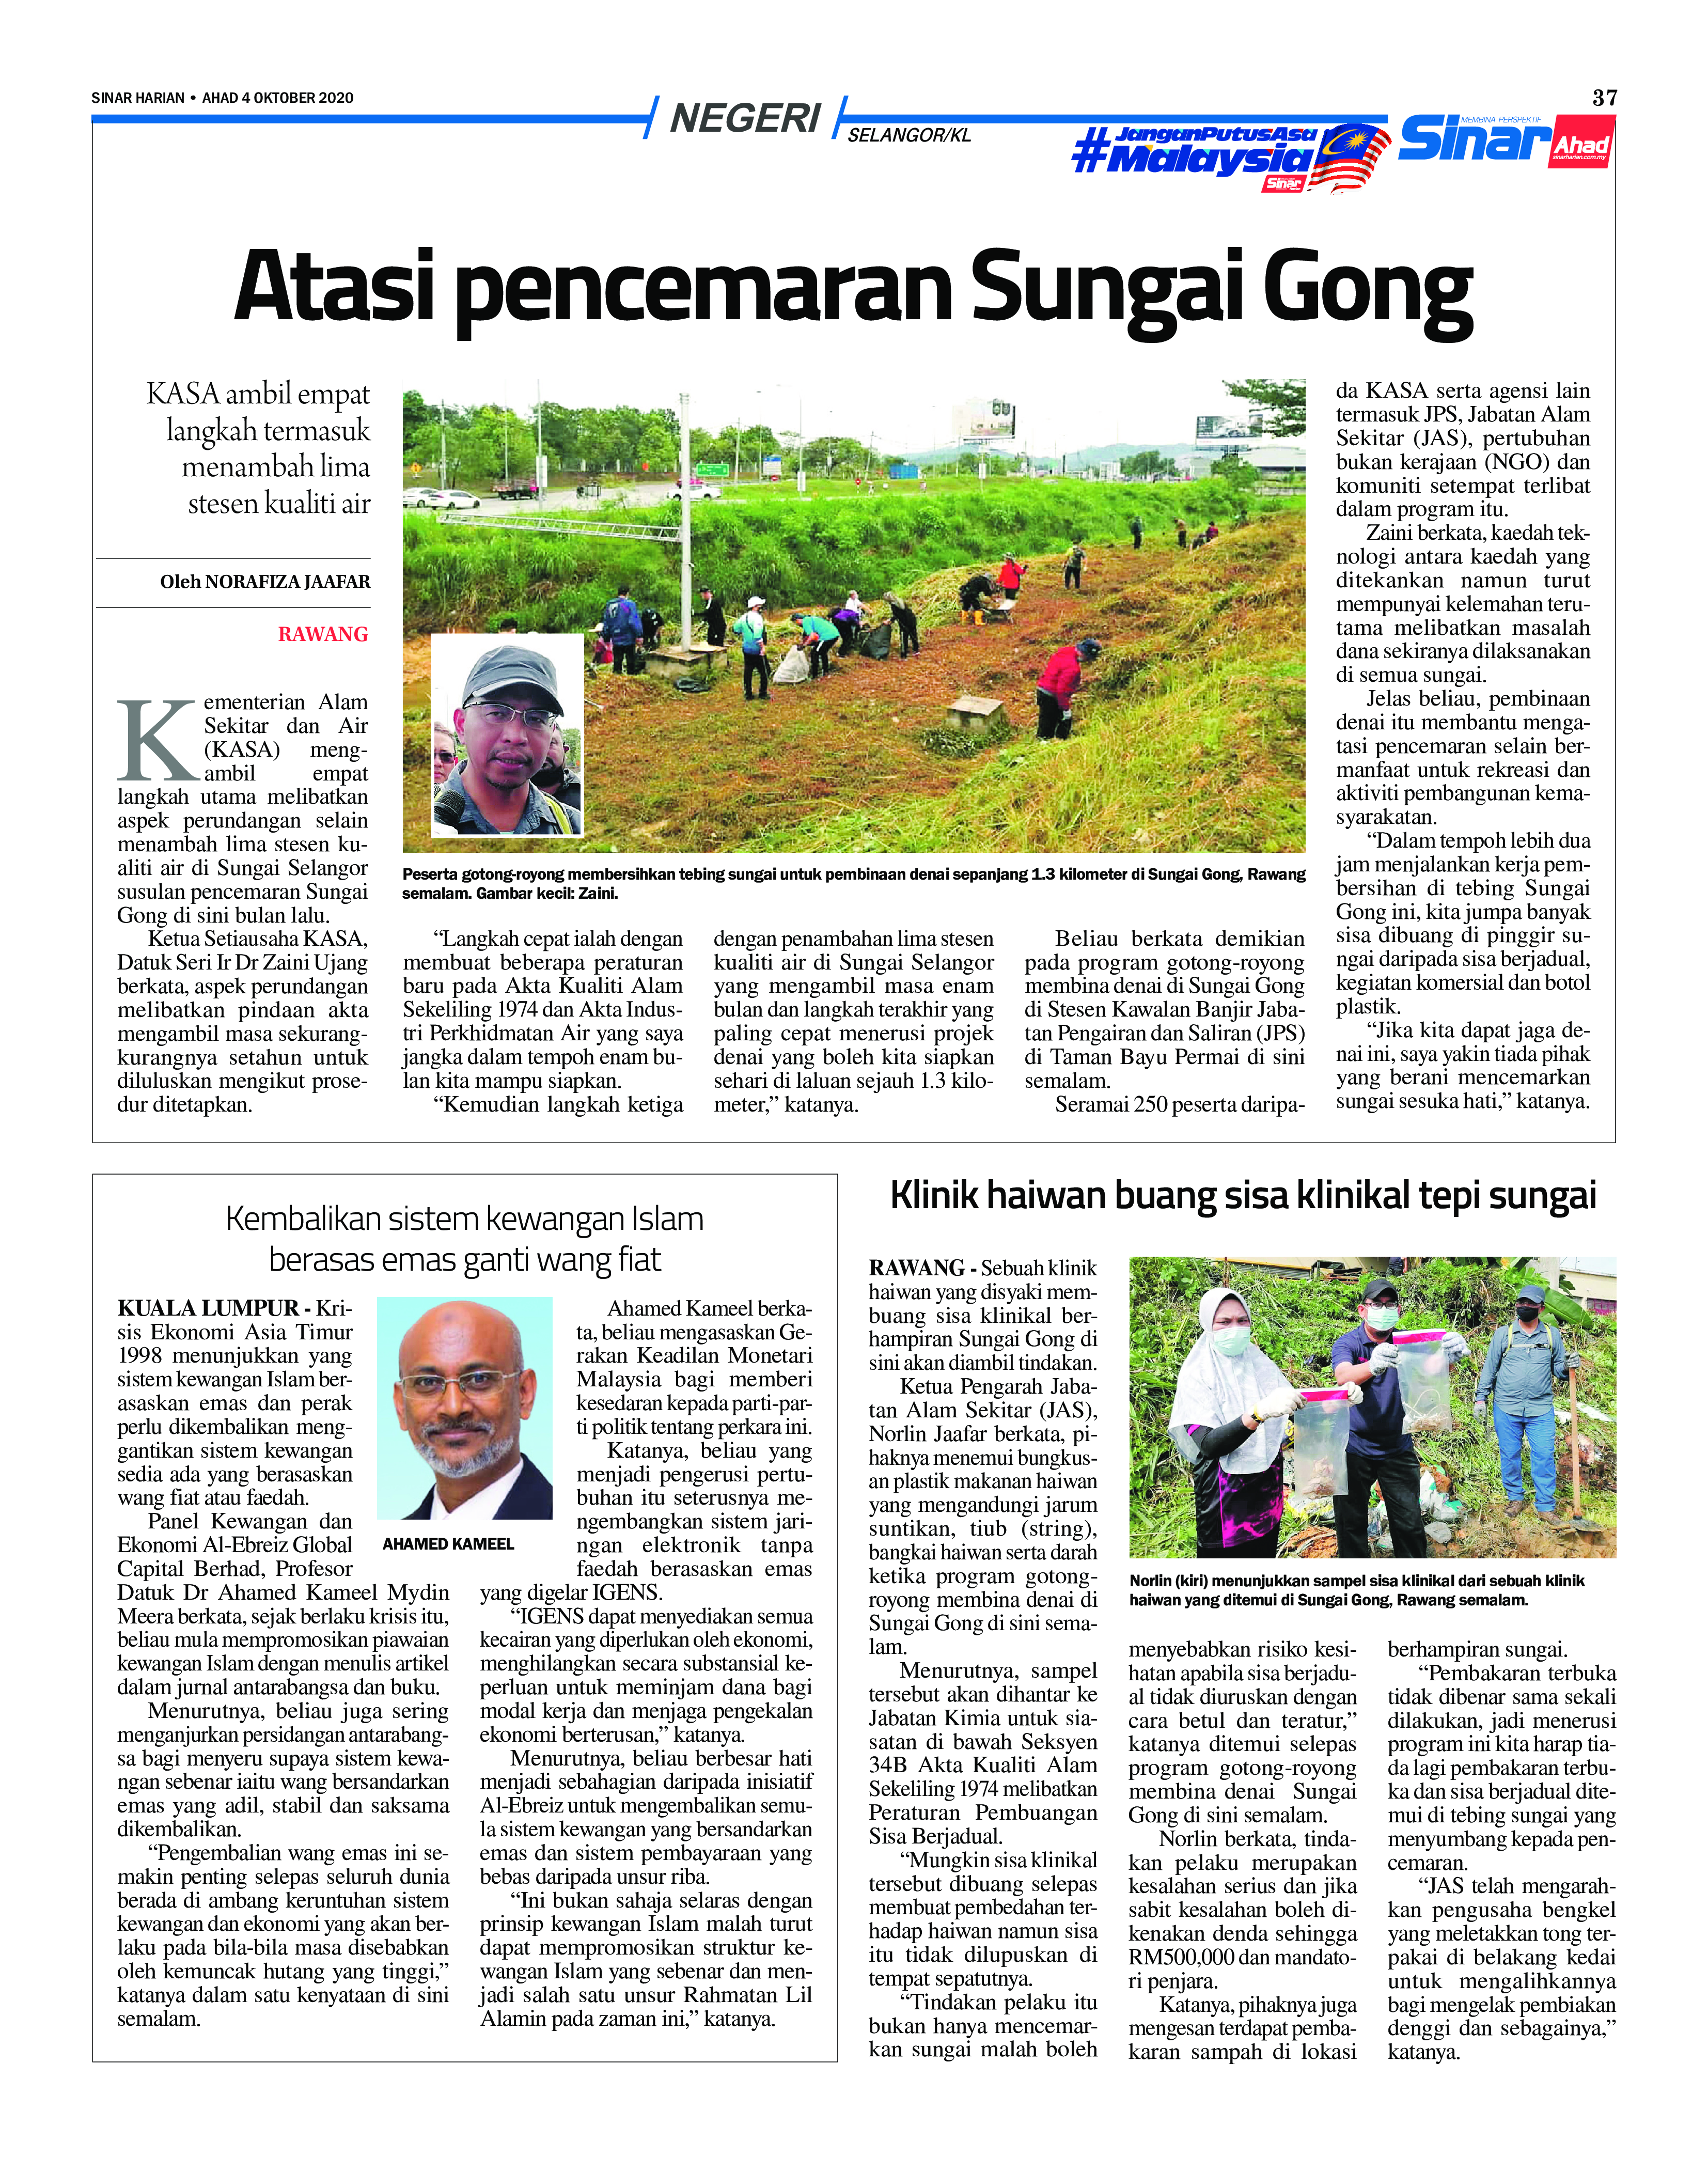 Sinar Harian | 4 October 2020 | Restore The Gold-Based Islamic Financial System Instead of Fiat Money